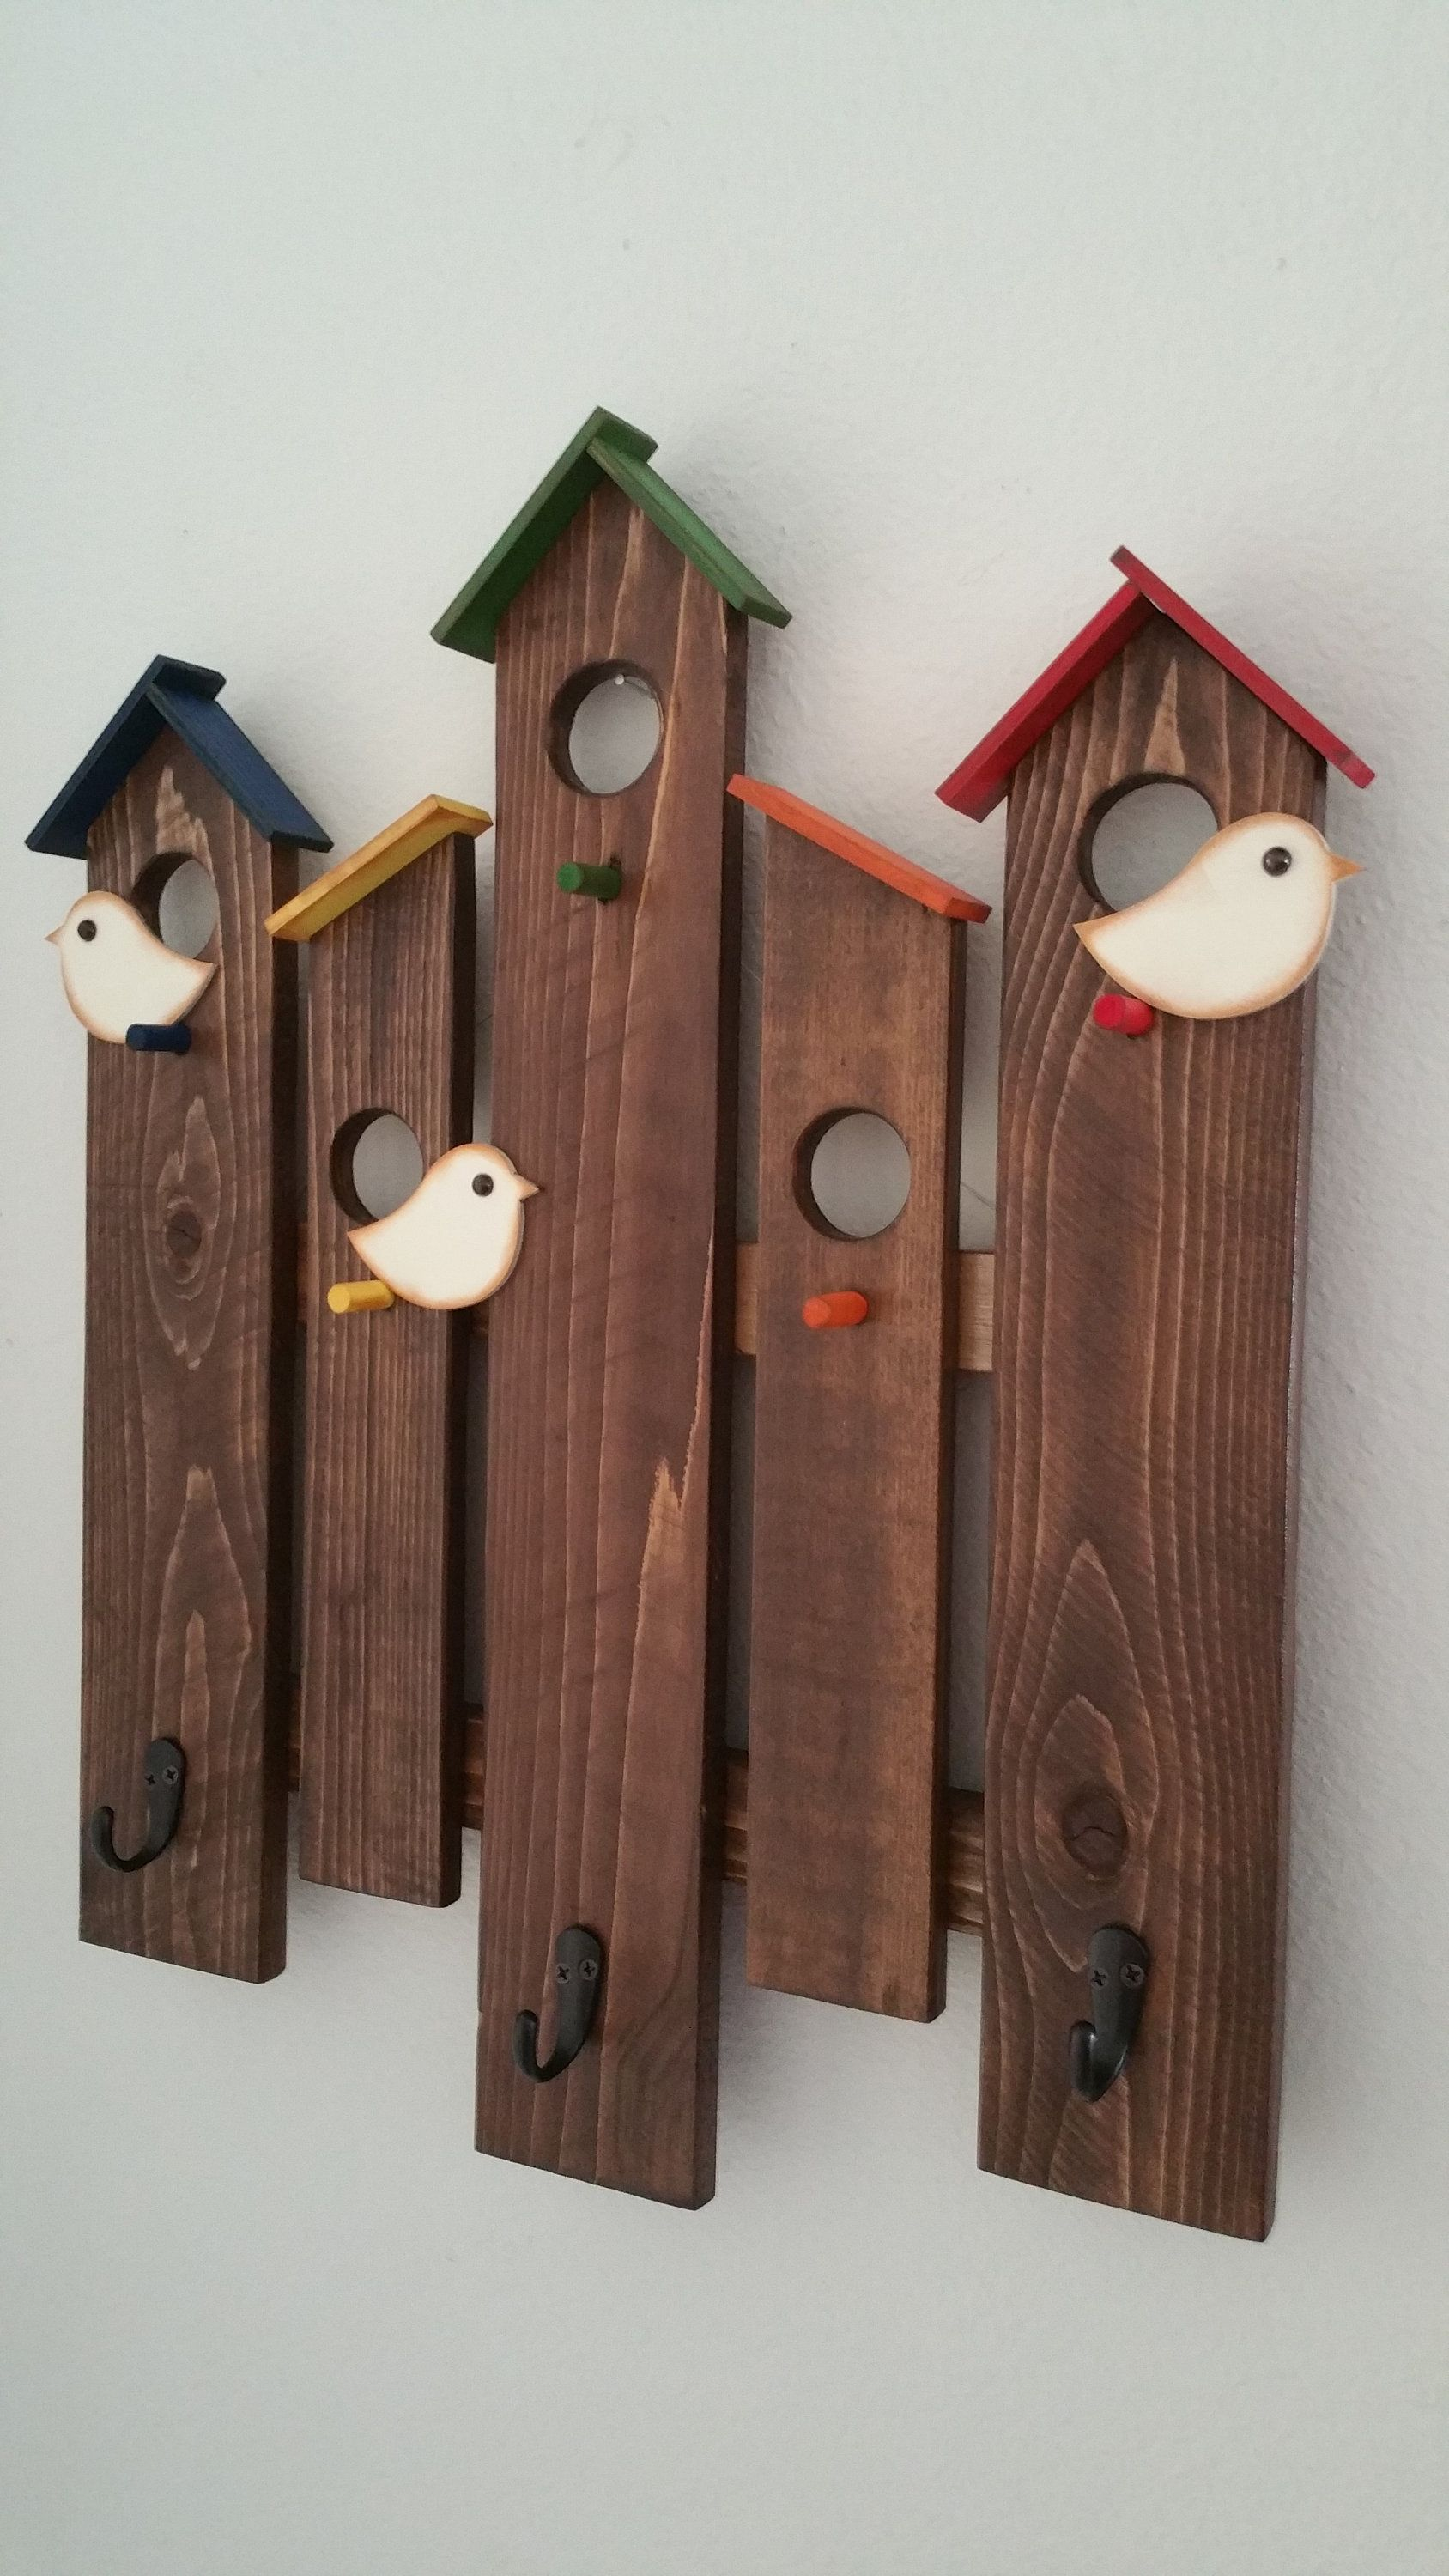 Coat Rack Wall Rack Birdhouse Wall Rack Wood Wall Rack Wood Coat Rack By Countrychicbowtic On Etsy Scrap Wood Projects Wood Crafts Wood Pallet Projects